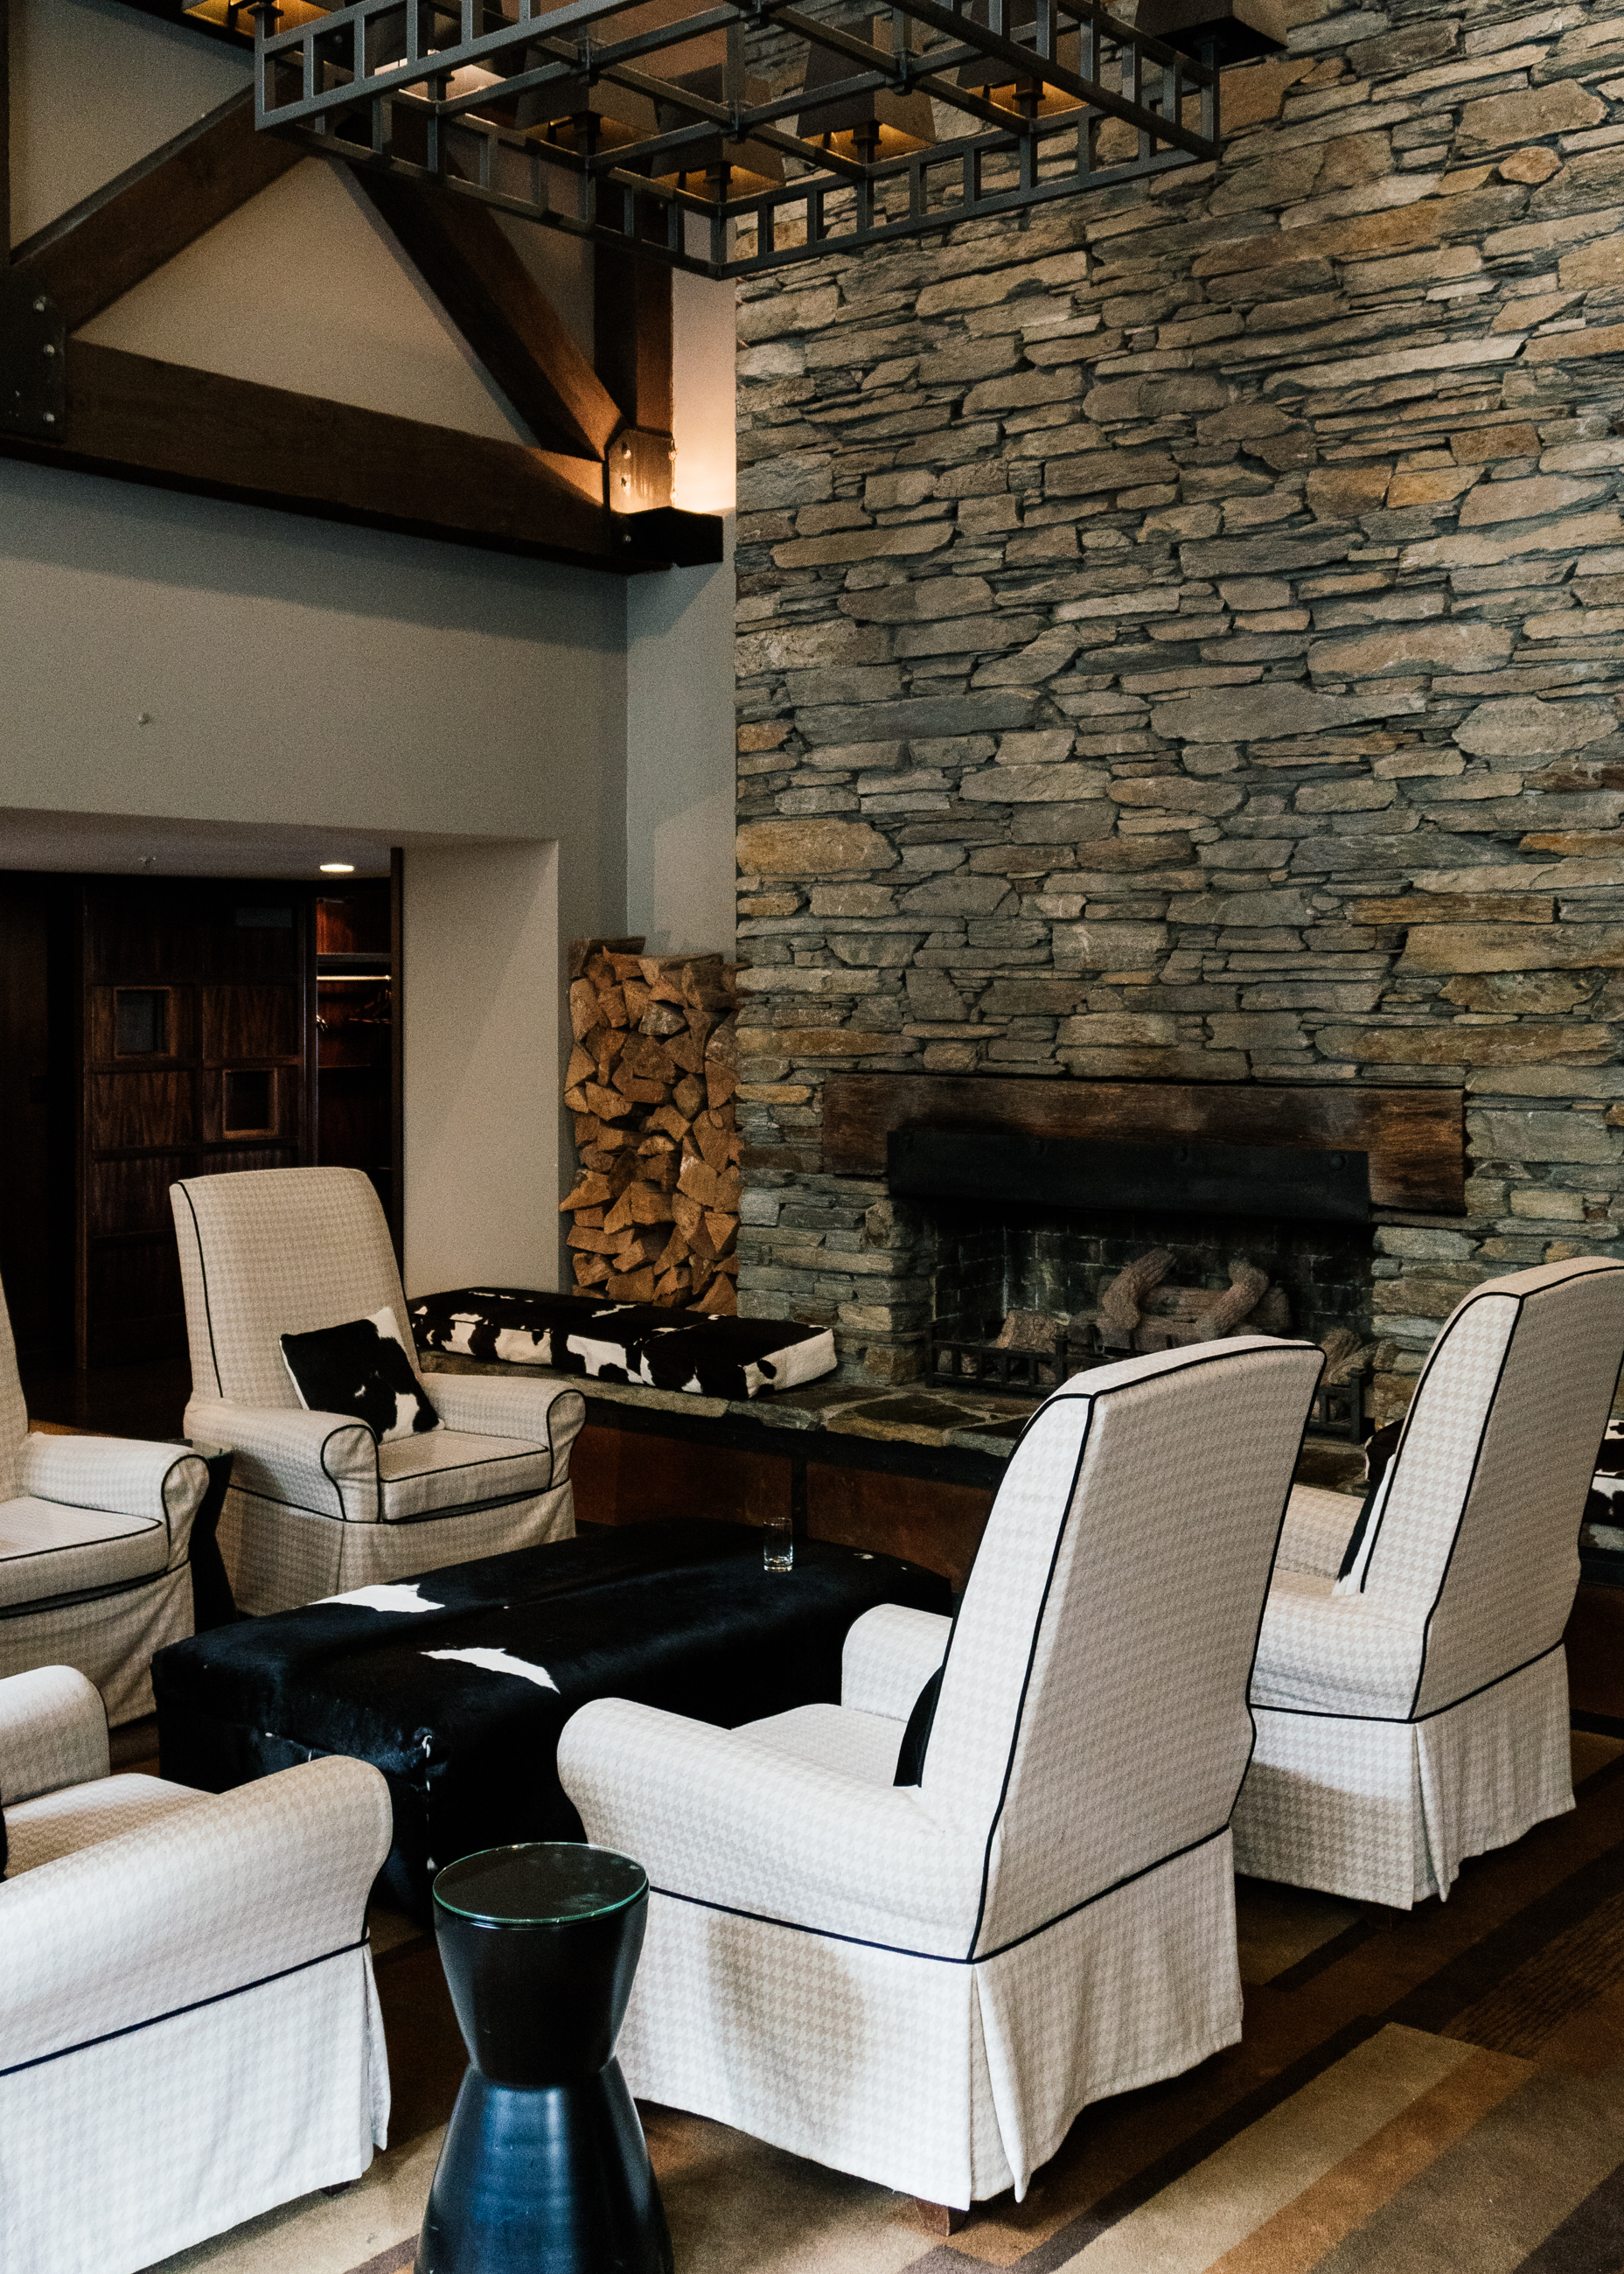 The hotel lobby. Imagine here, winter and sitting by the fire sipping hot chocolate. Can't stop thinking about those  Patagonia Chocolates !